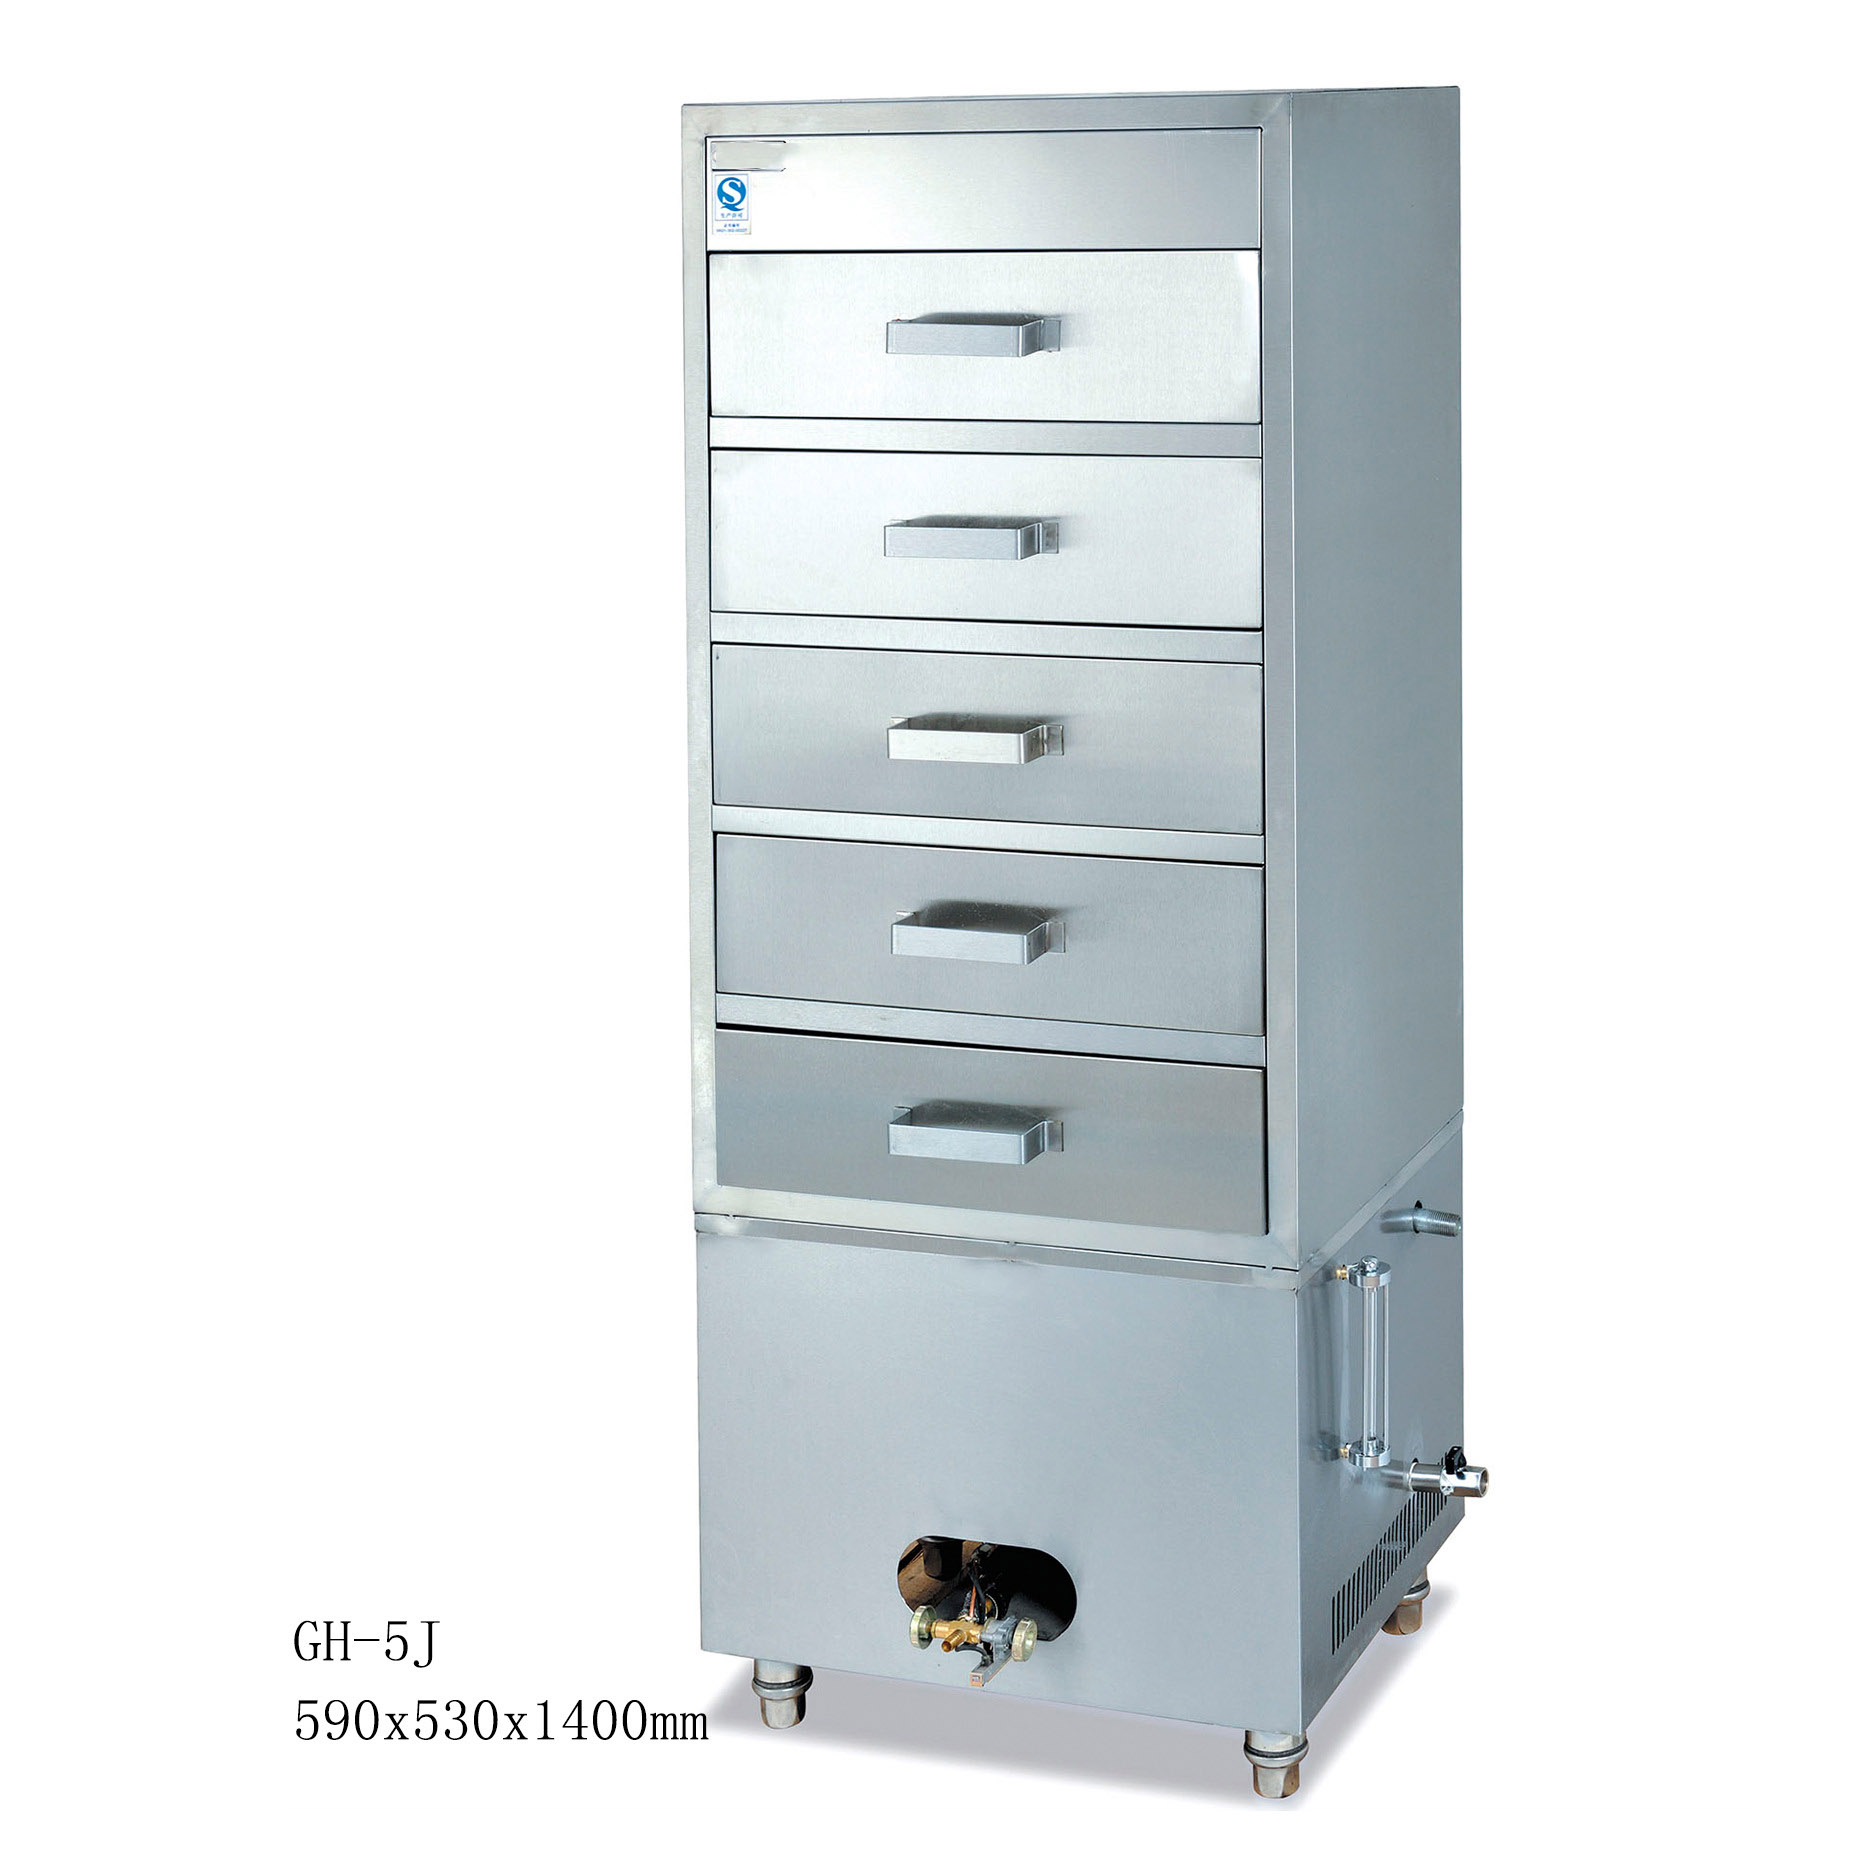 GH-5j Gas Commercial 5 Layers Steaming Cabinet Seafood Steamer Kitchen Equipment Safety Energy Saving And Health